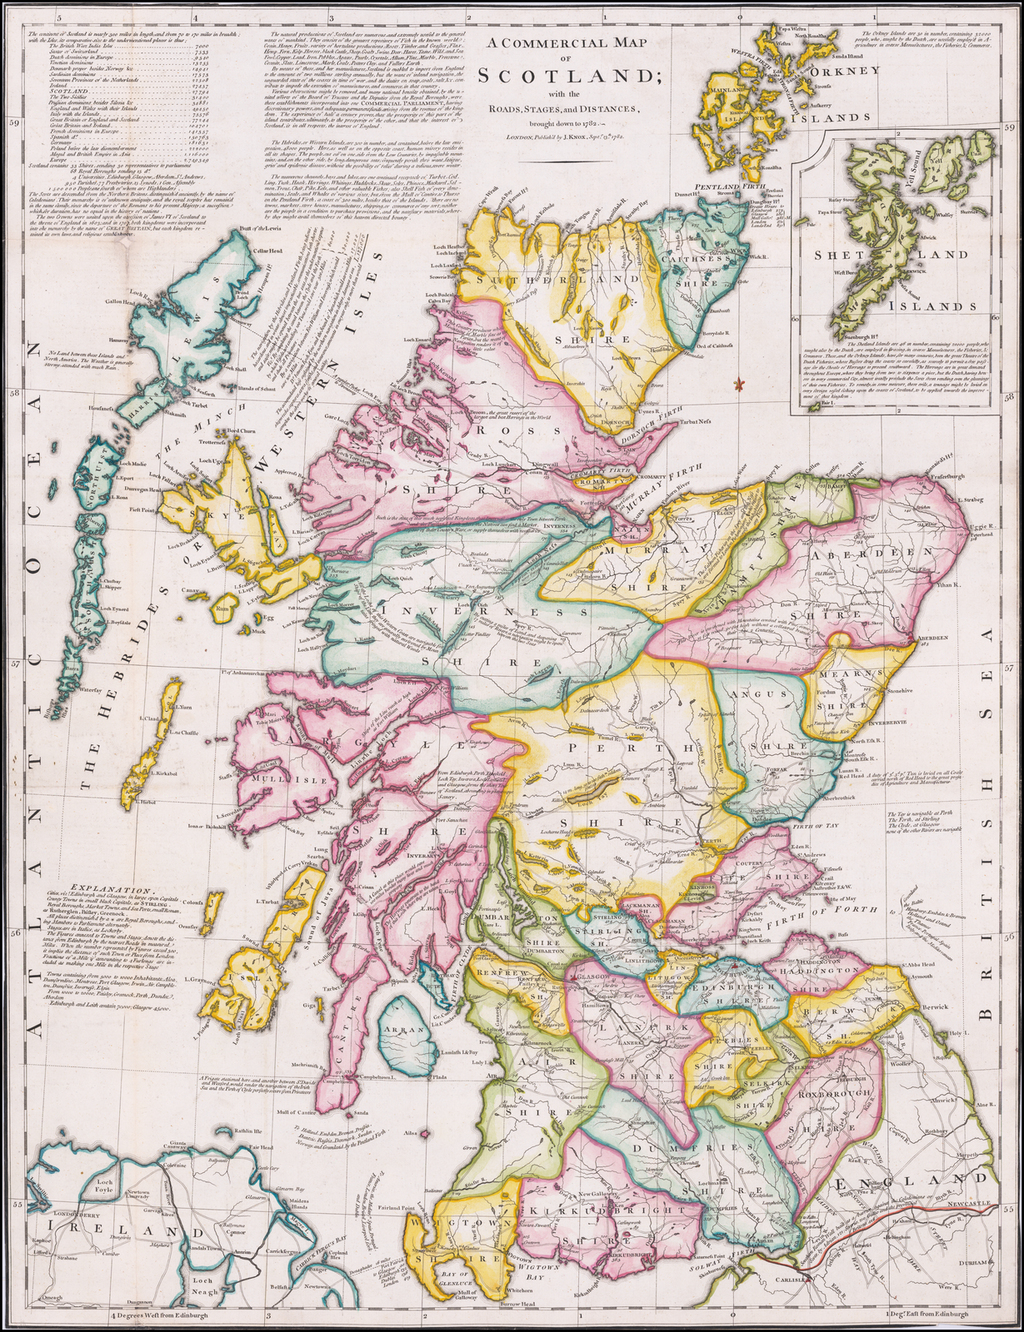 A Commercial Map of Scotland; with the Roads, Stages, and Distances, brought down to 1782 By J. Knox